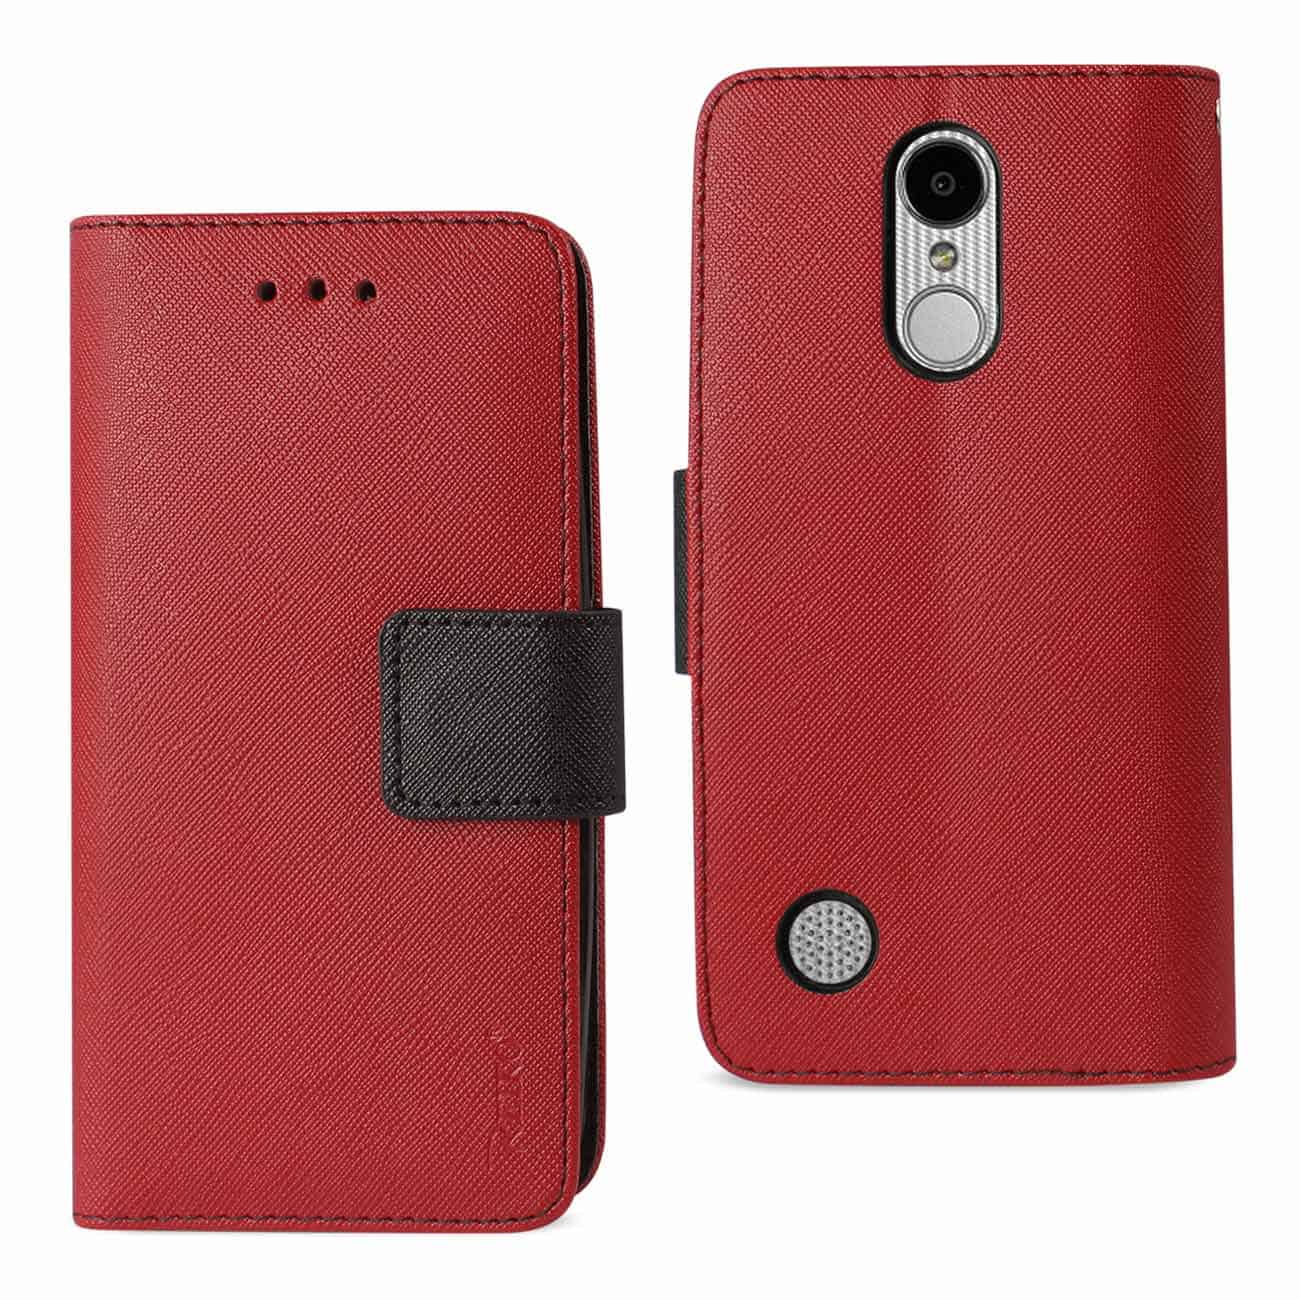 LG ARISTO/ FORTUNE/ PHOENIX 3 PLUS 3-IN-1 WALLET CASE IN RED